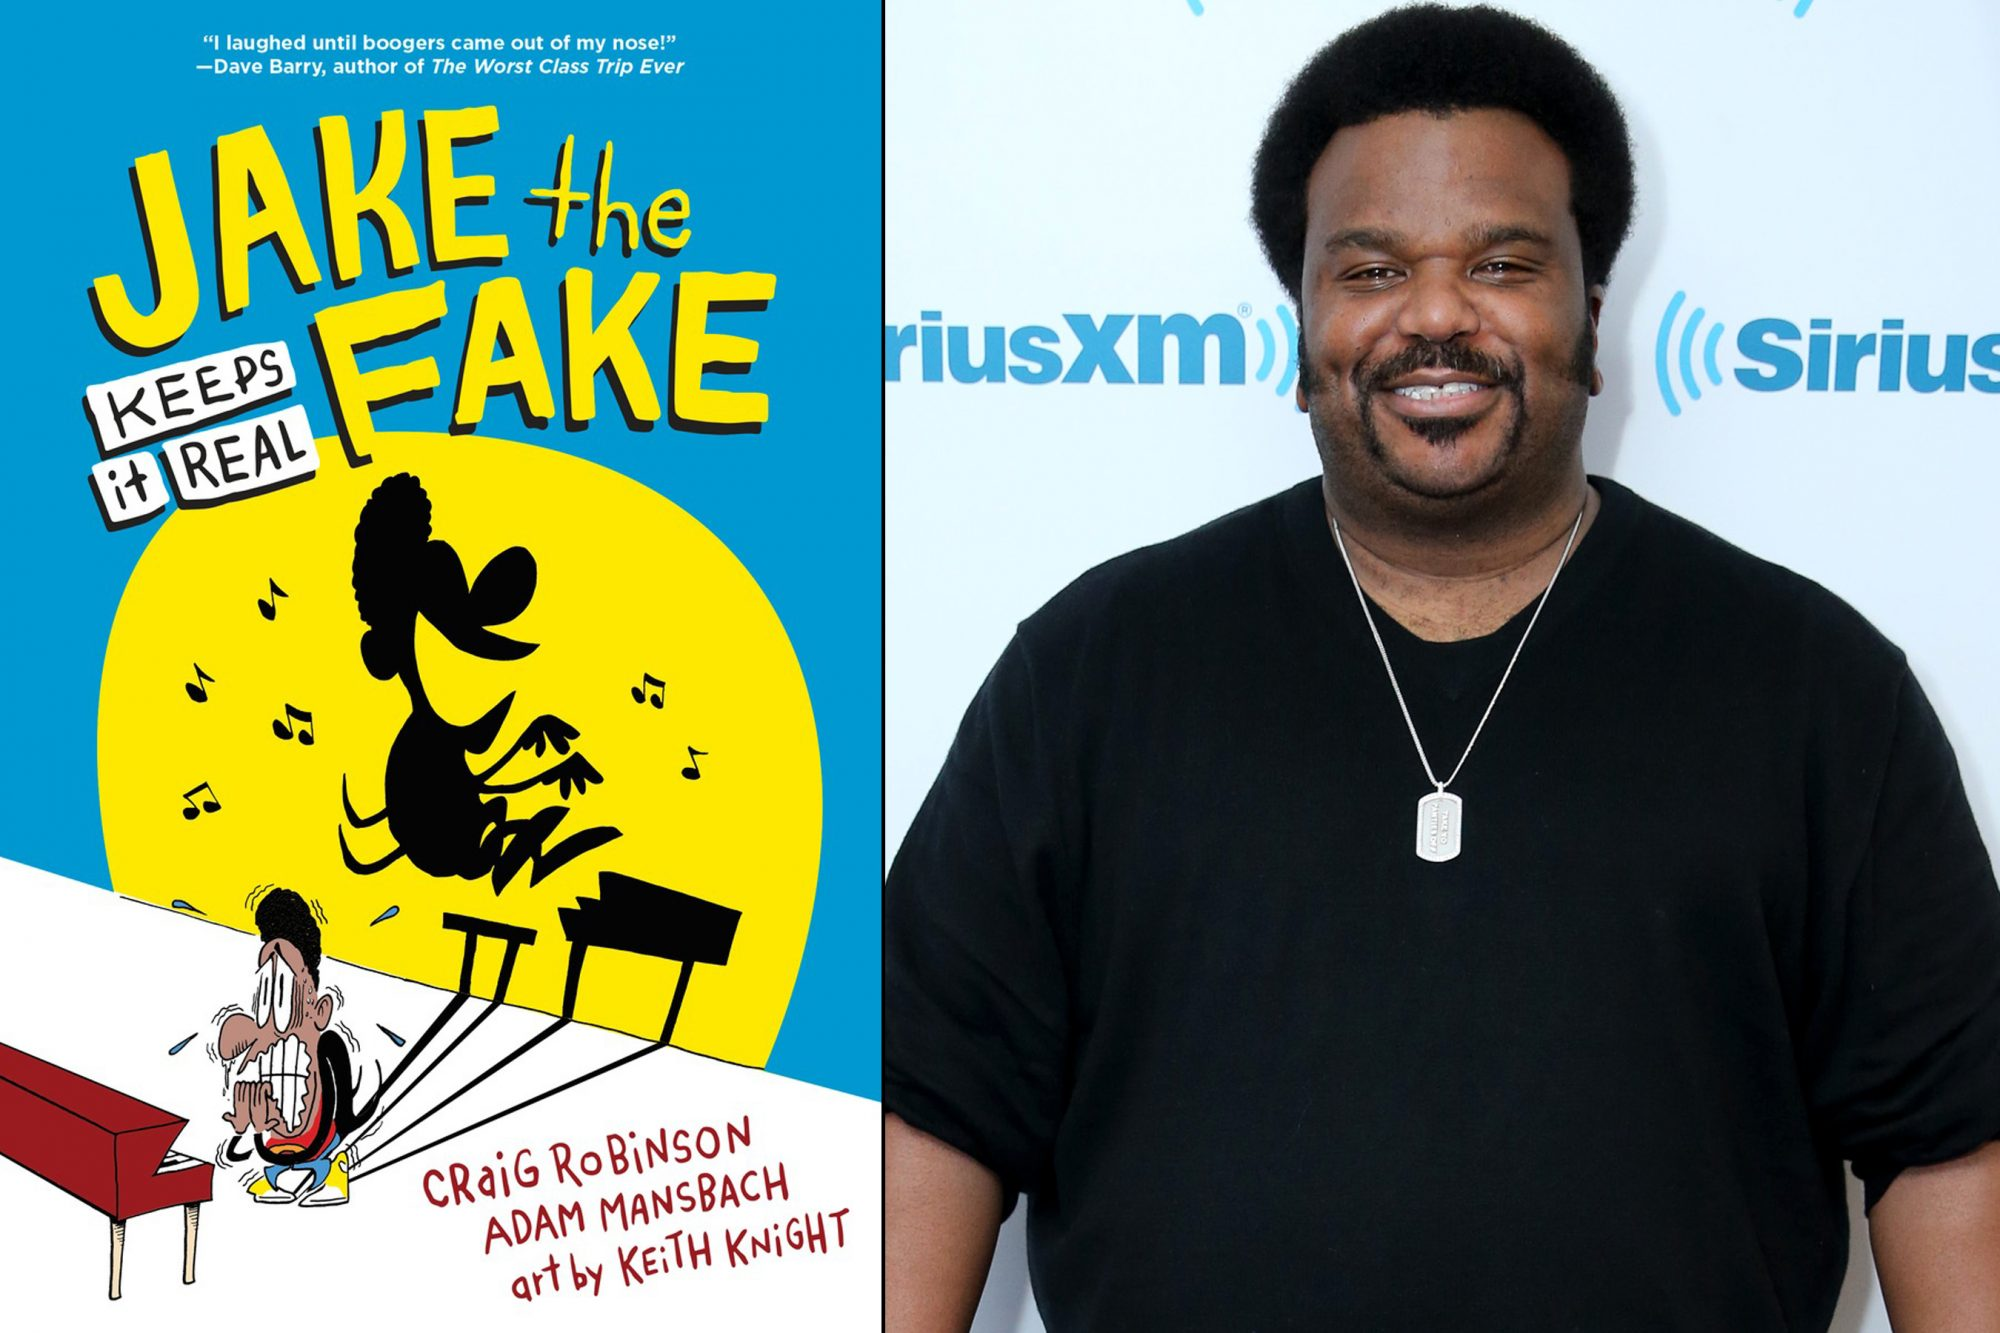 Jake the Fake by Craig Robinson